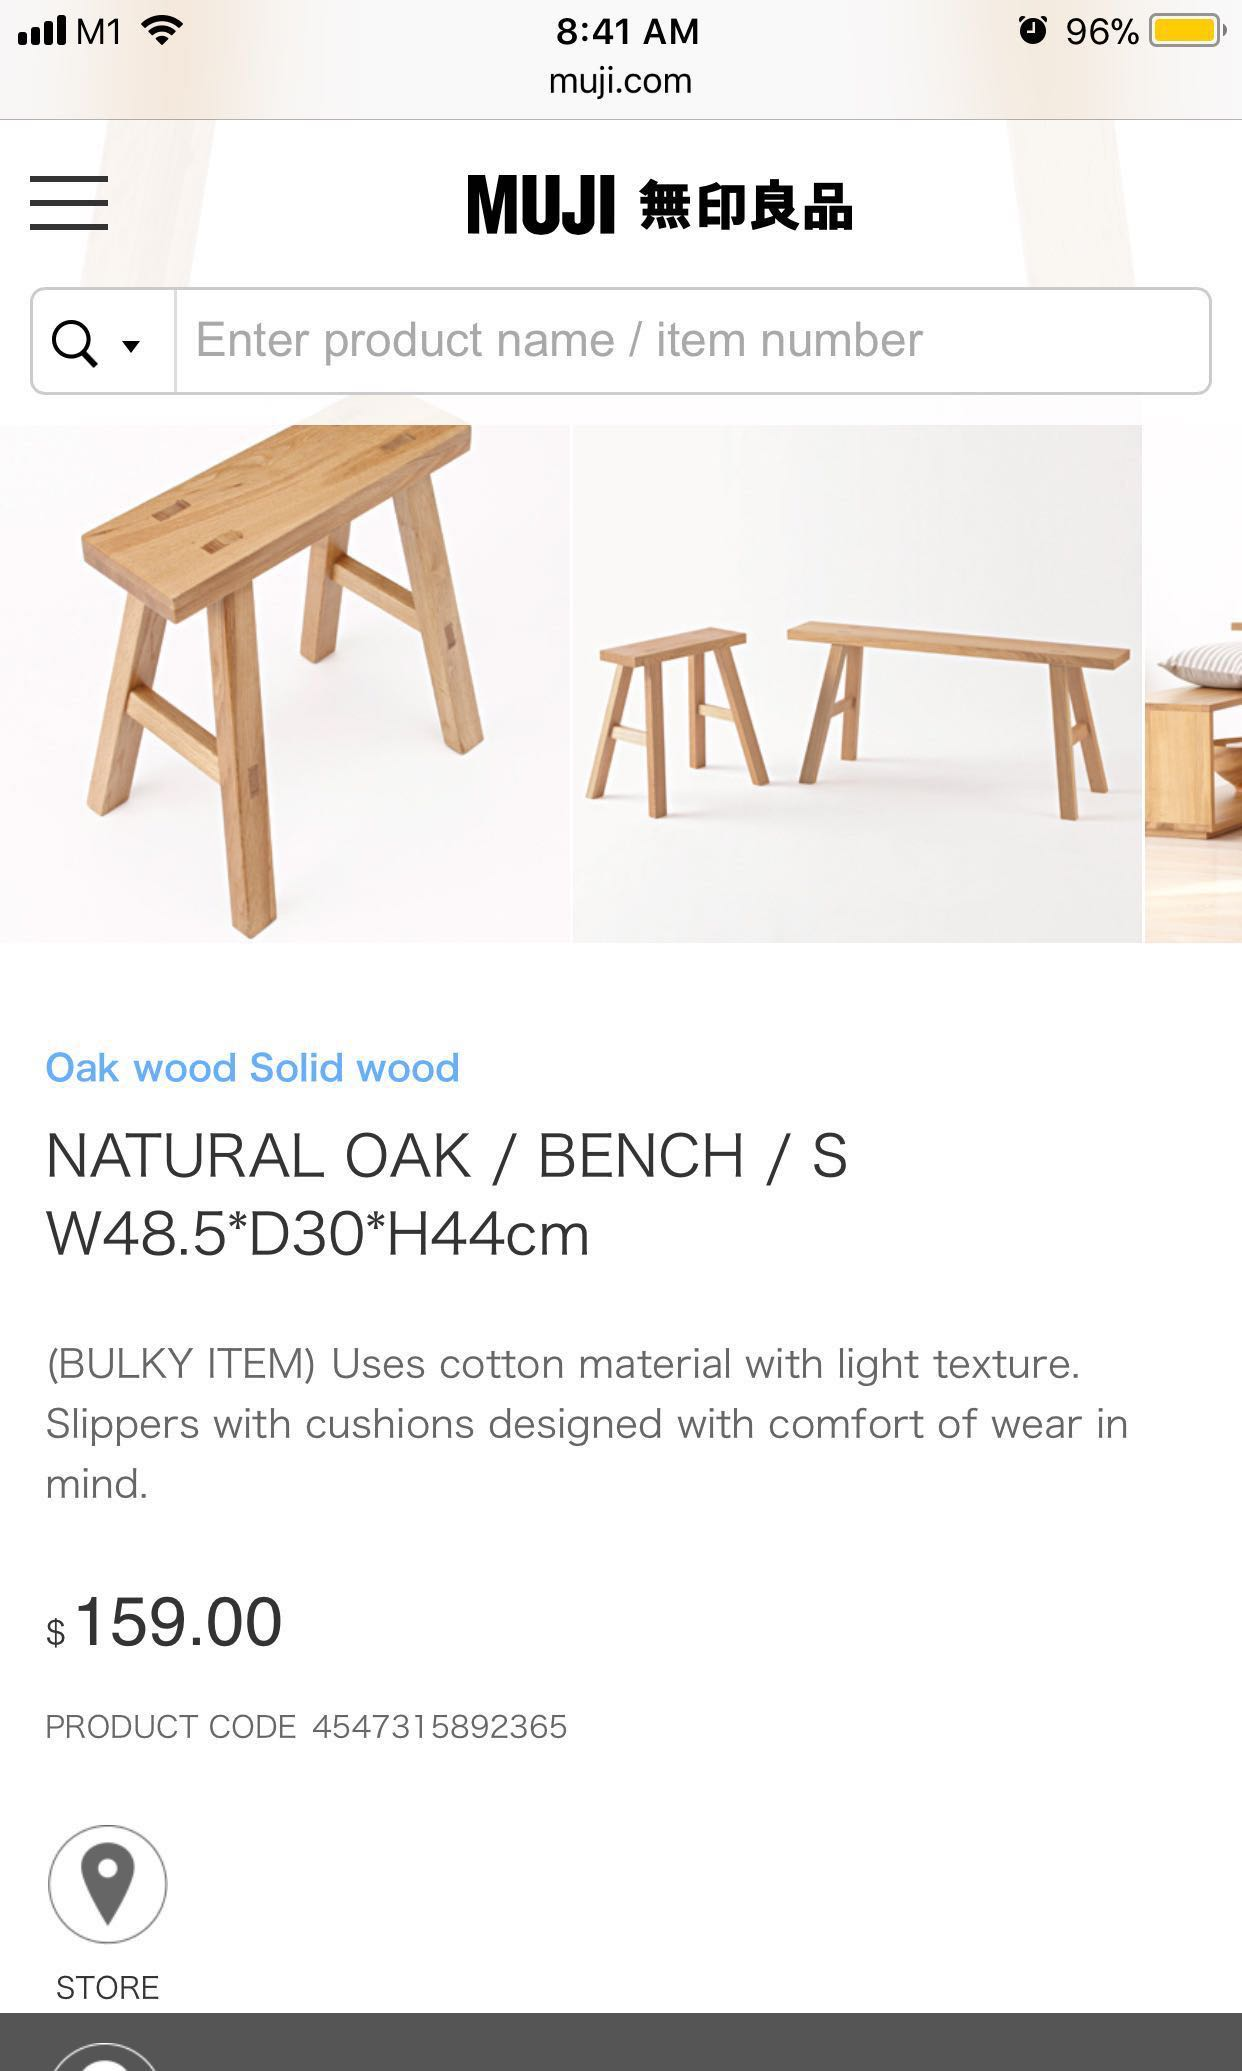 Incredible Muji Oak Small Bench Furniture Tables Chairs On Carousell Creativecarmelina Interior Chair Design Creativecarmelinacom